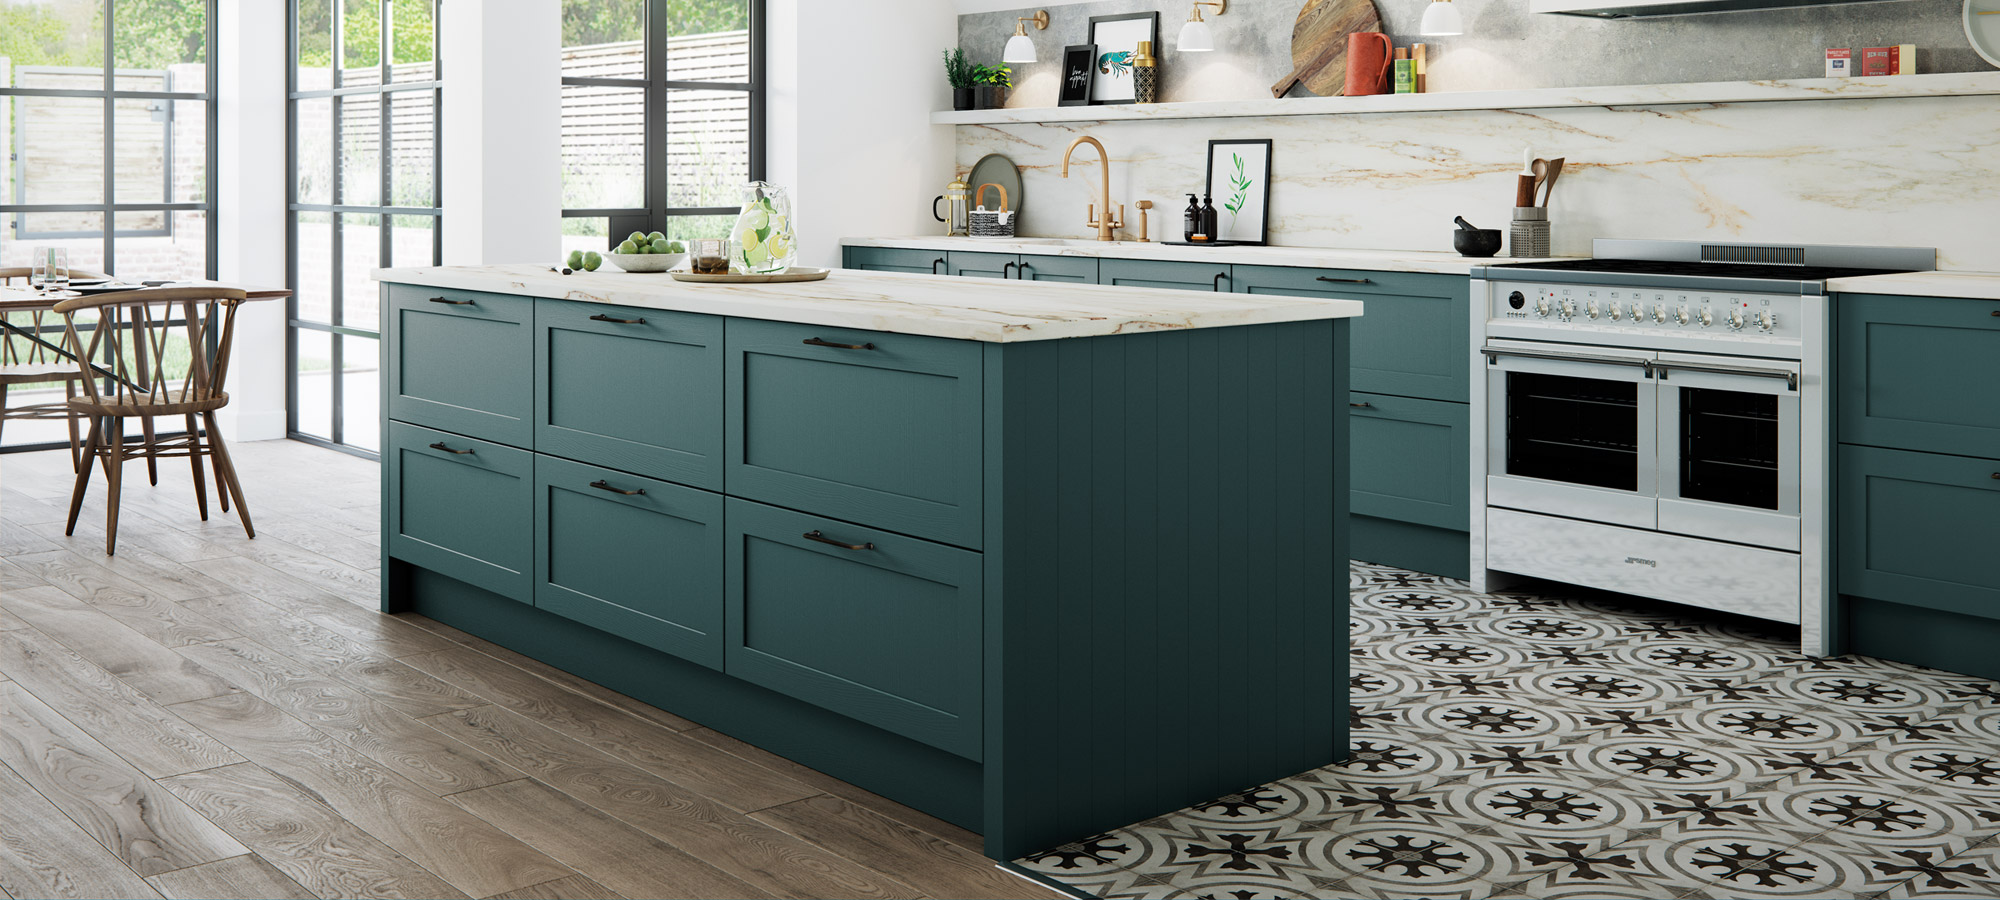 The Panelling Centre For Kitchens Flooring Bedrooms Appliances,Plastic Emulsion Paint Walls